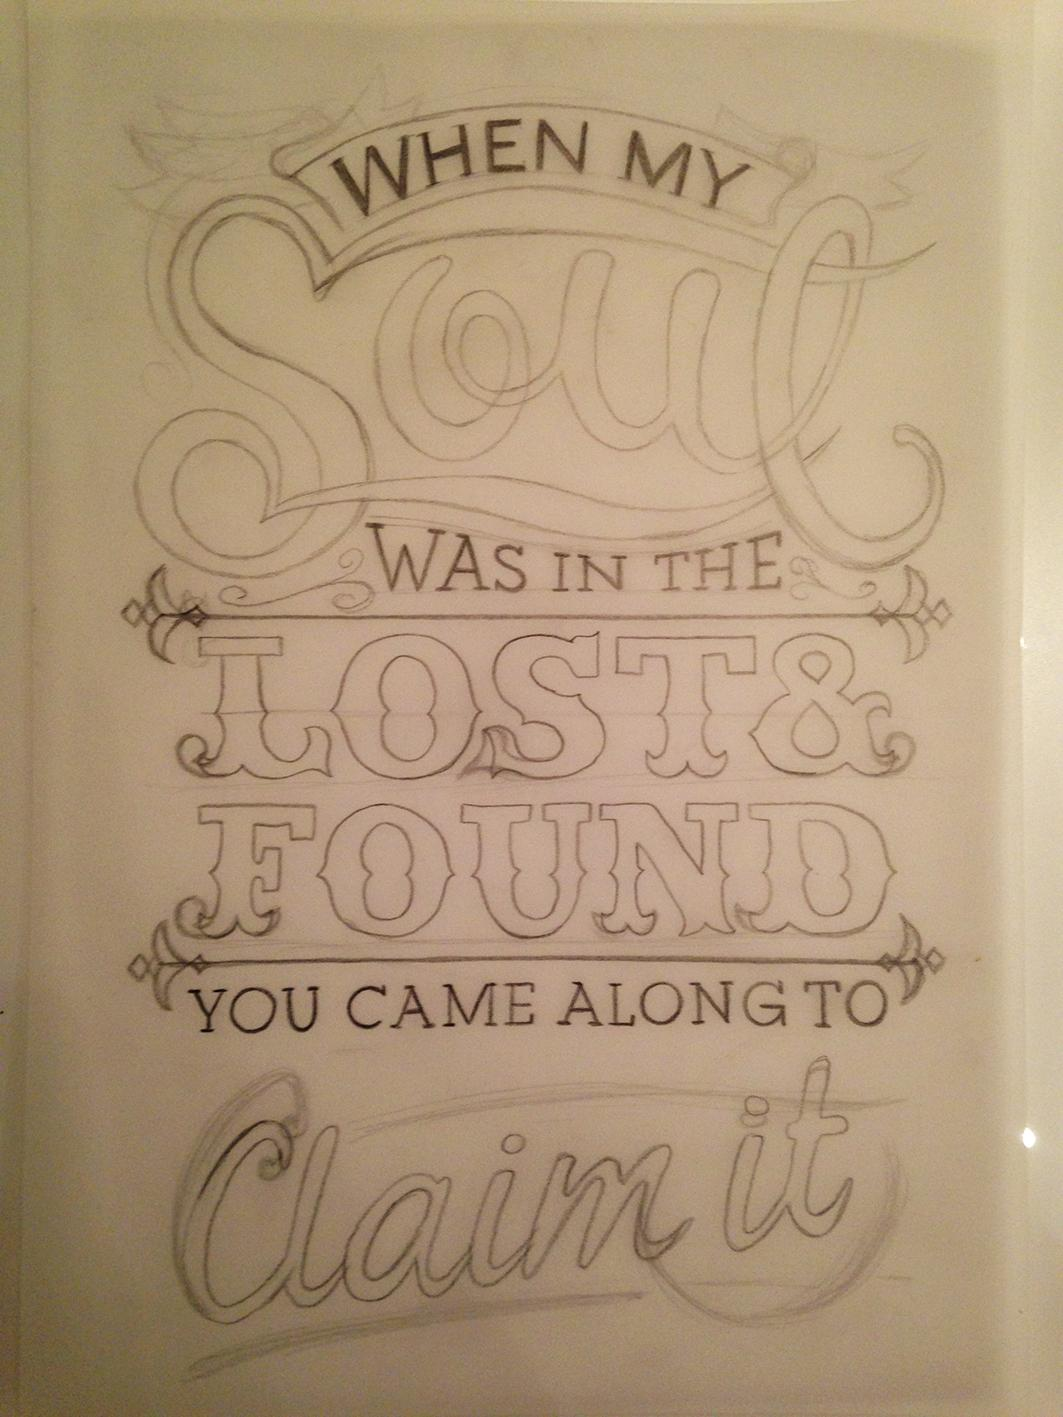 When my soul was in the lost and found... - image 9 - student project